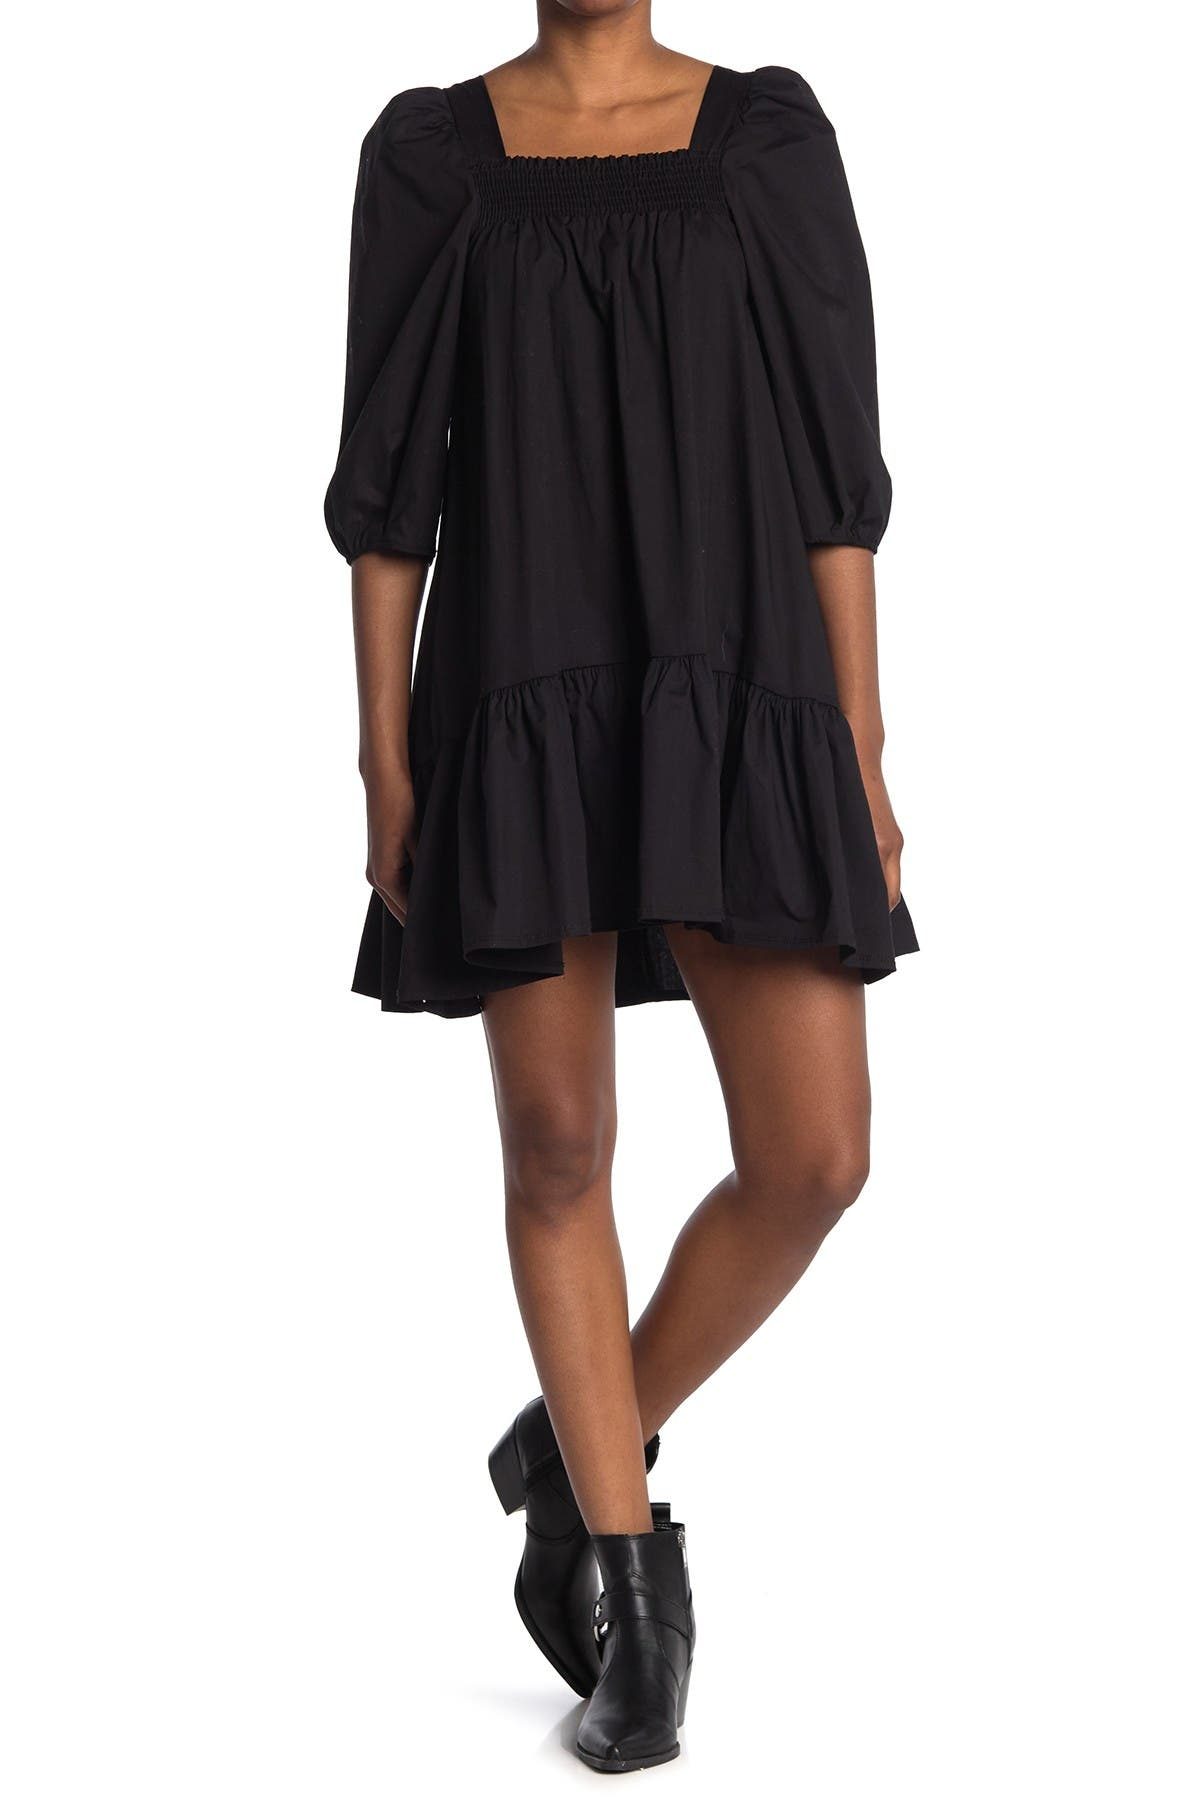 Image of Velvet Torch Smock Poplin Dress